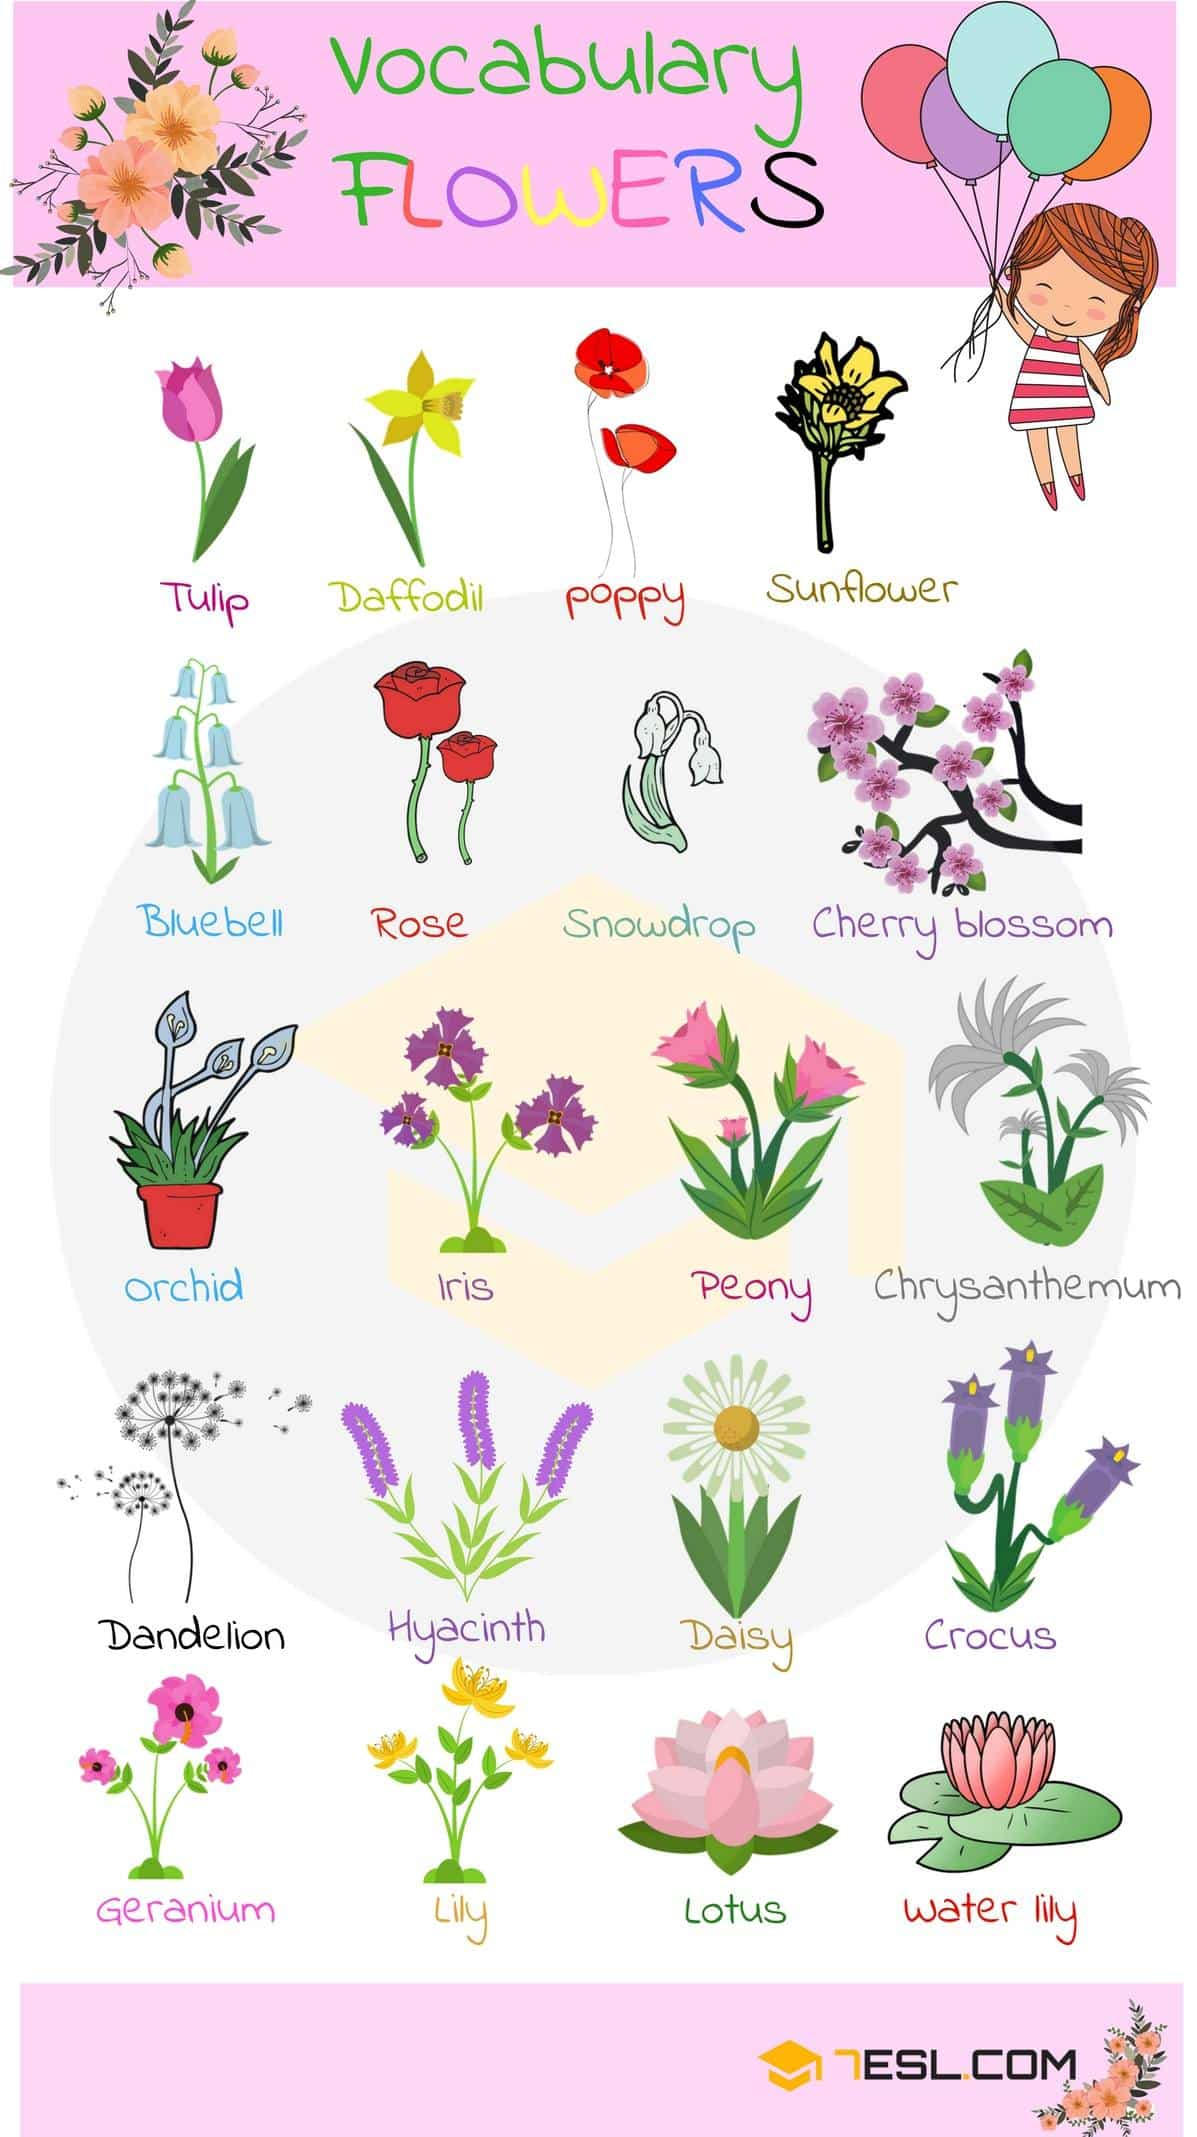 List Of Plant And Flower Names In English With Pictures